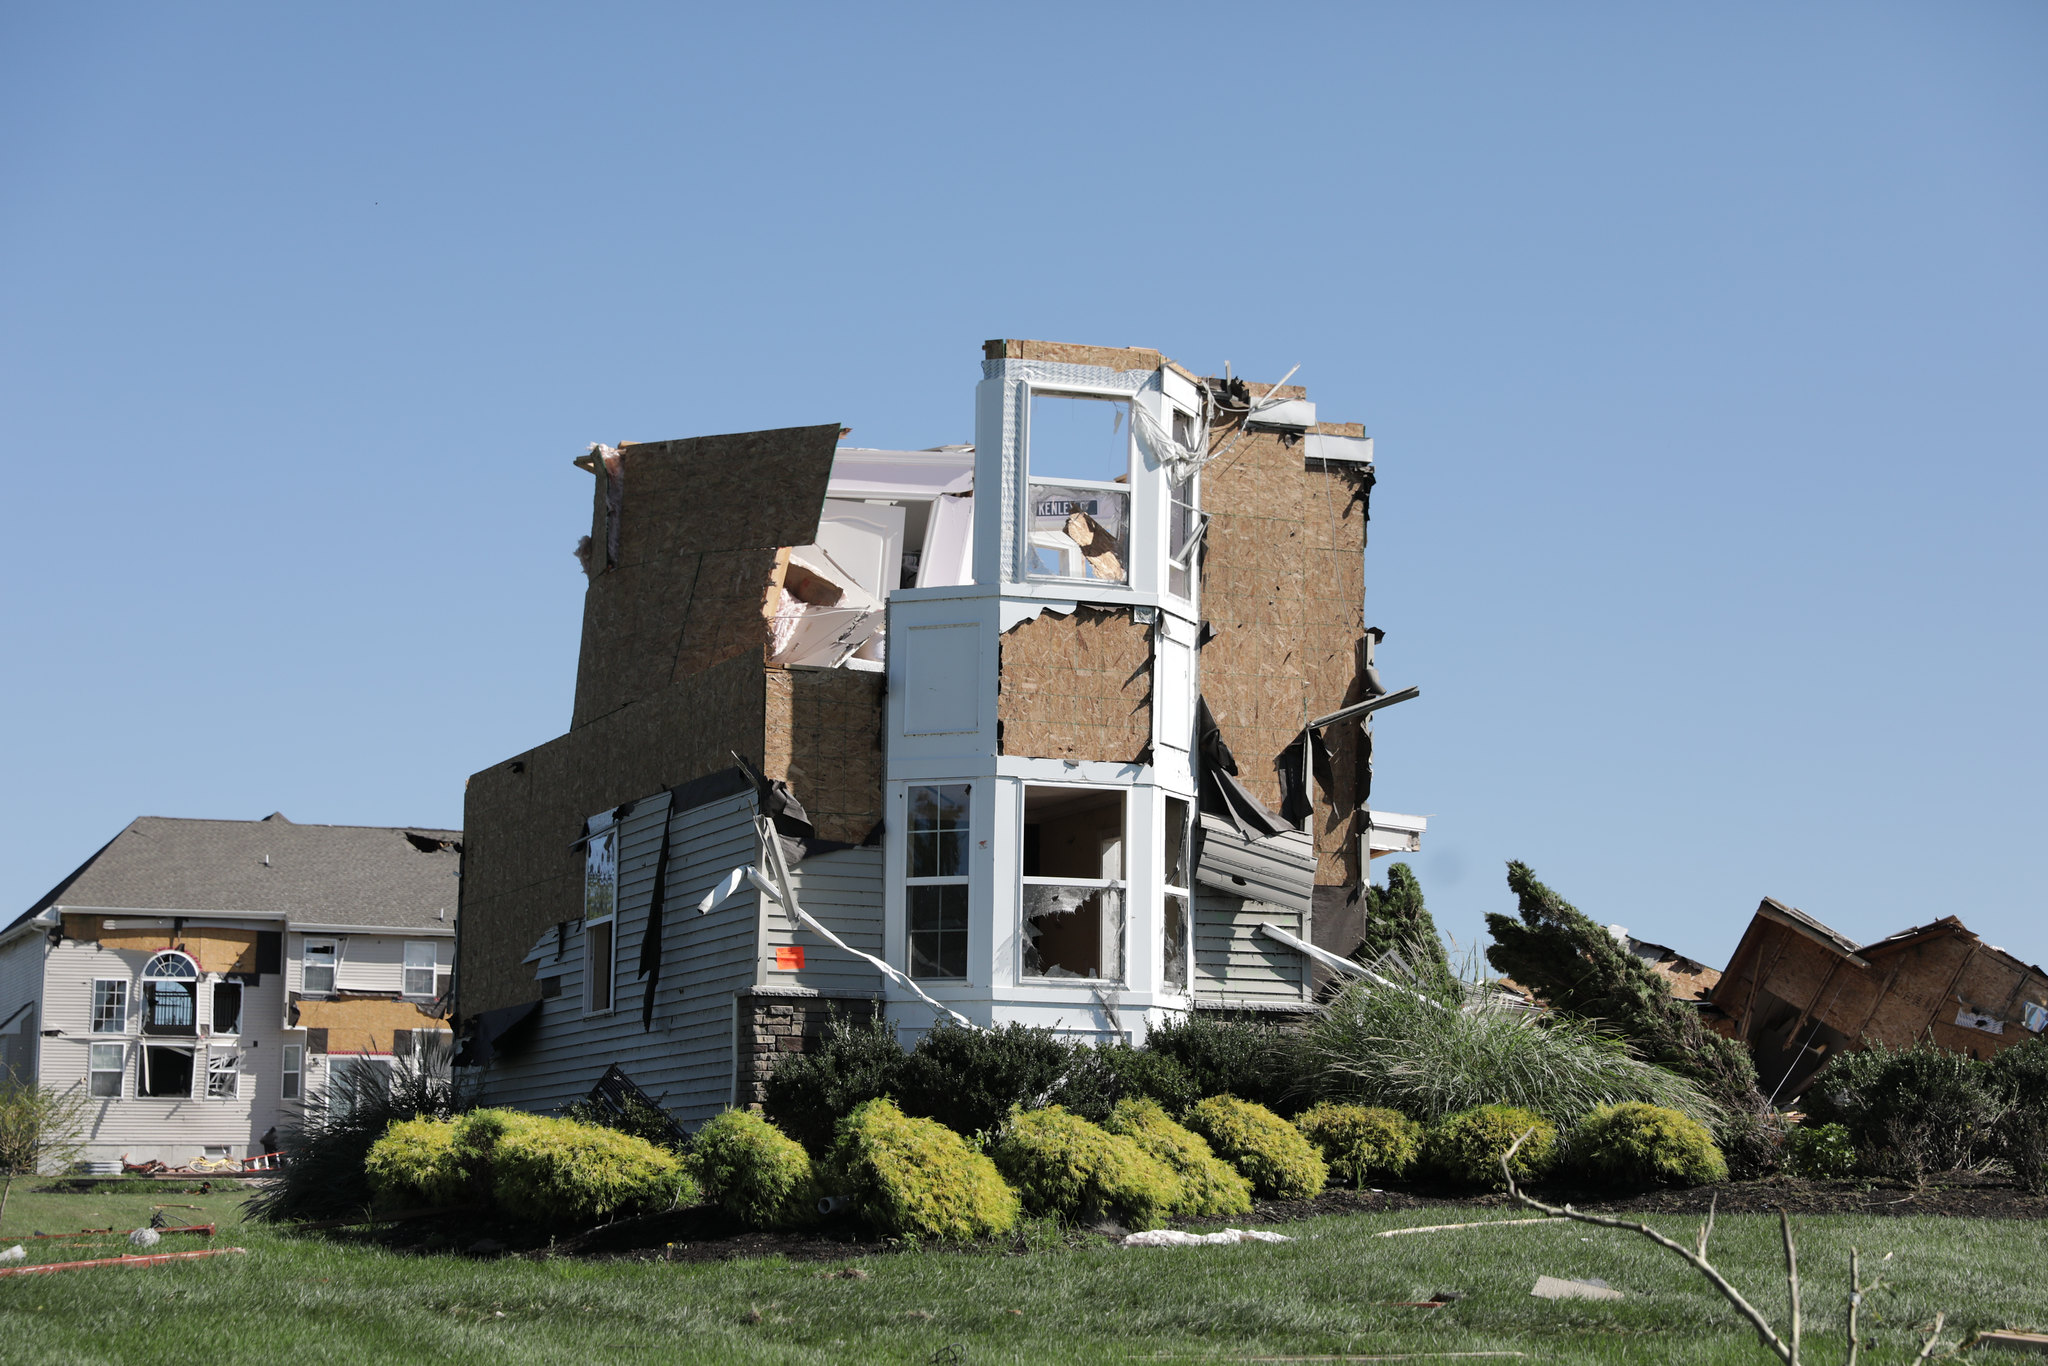 The top floor of a two story house is partly sheared off, with no roof